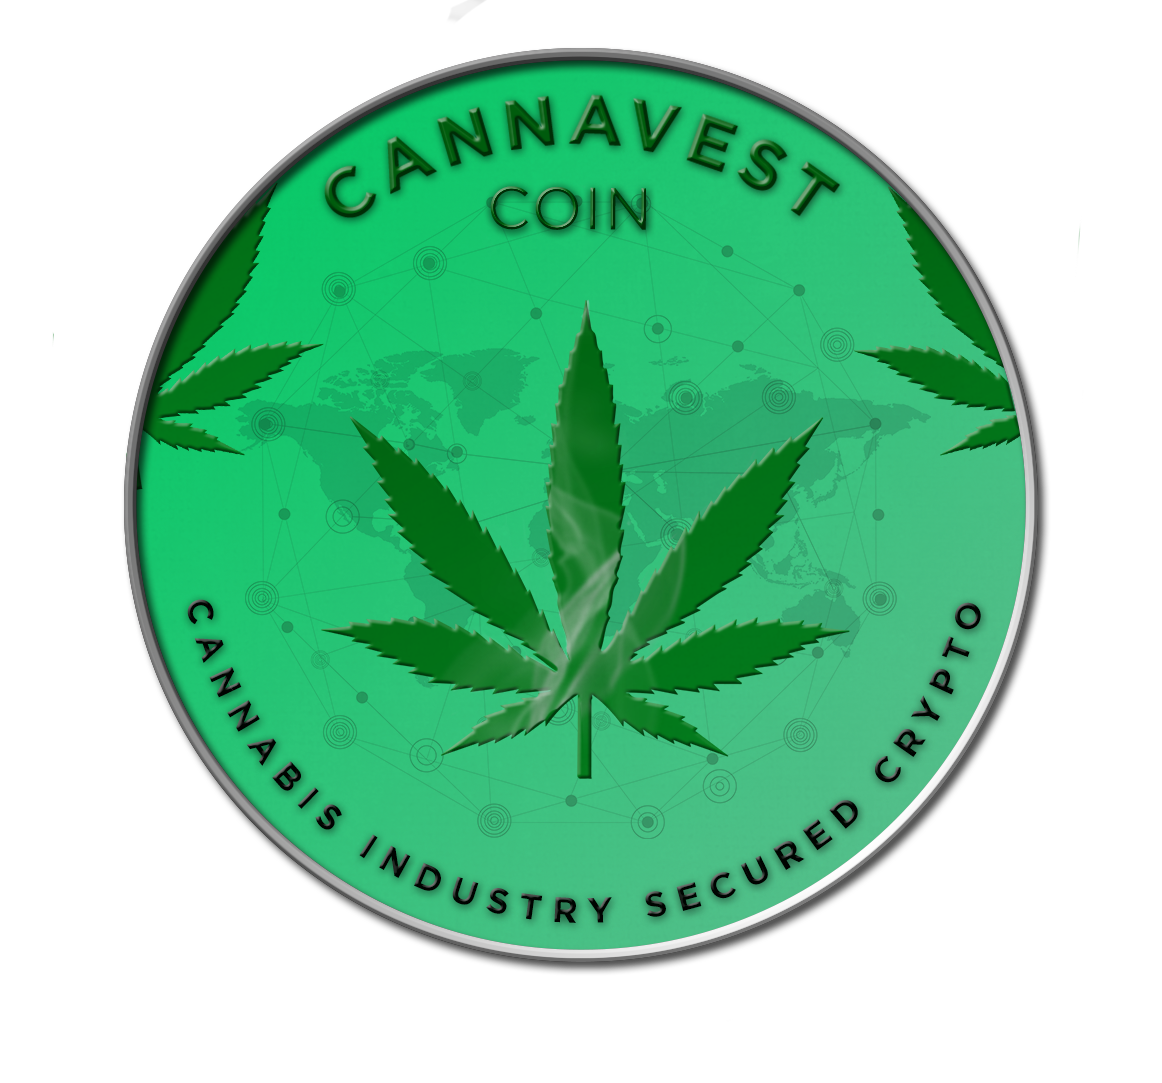 CannaVest-Coin_v3.png